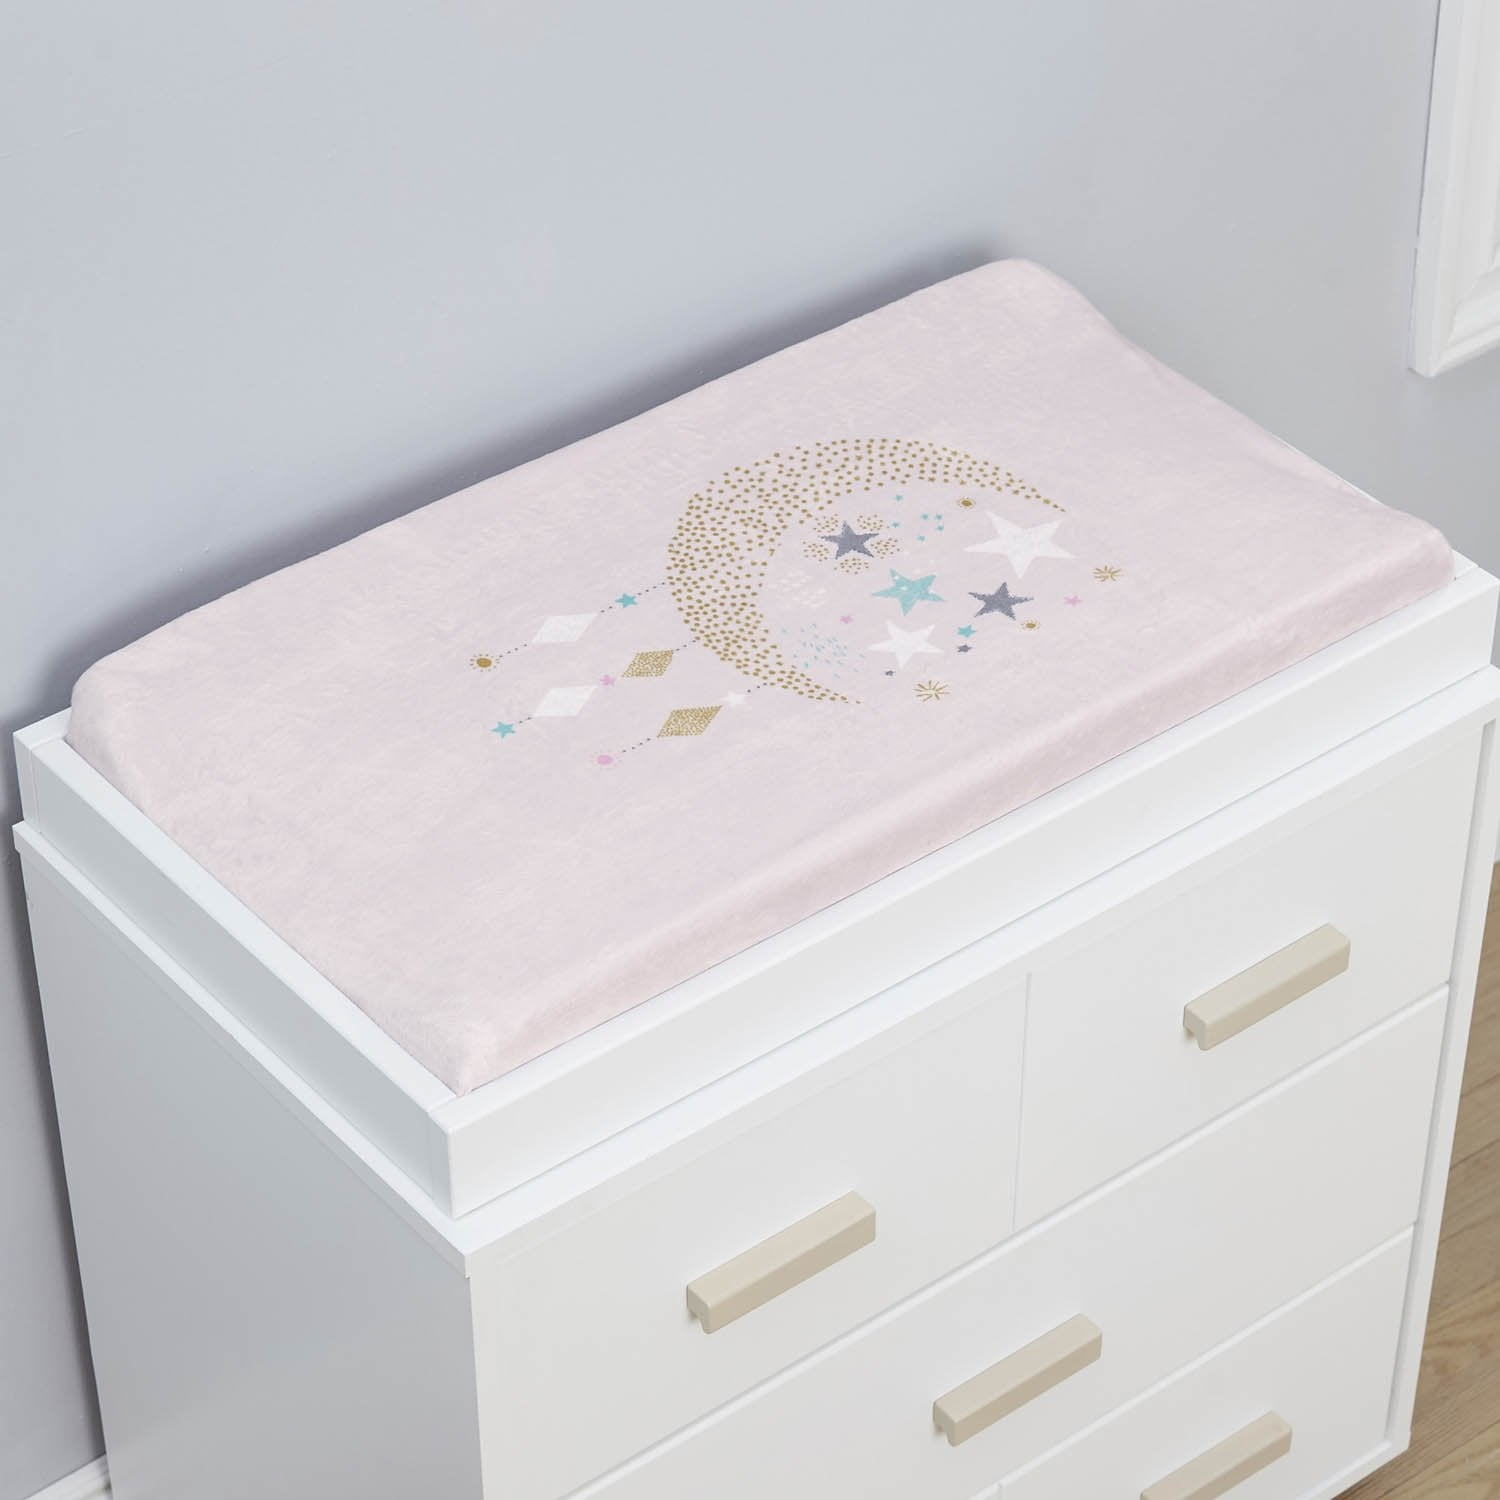 Just Born One World Collection Changing Pad Cover - Love & Sugar-Gerber Childrenswear